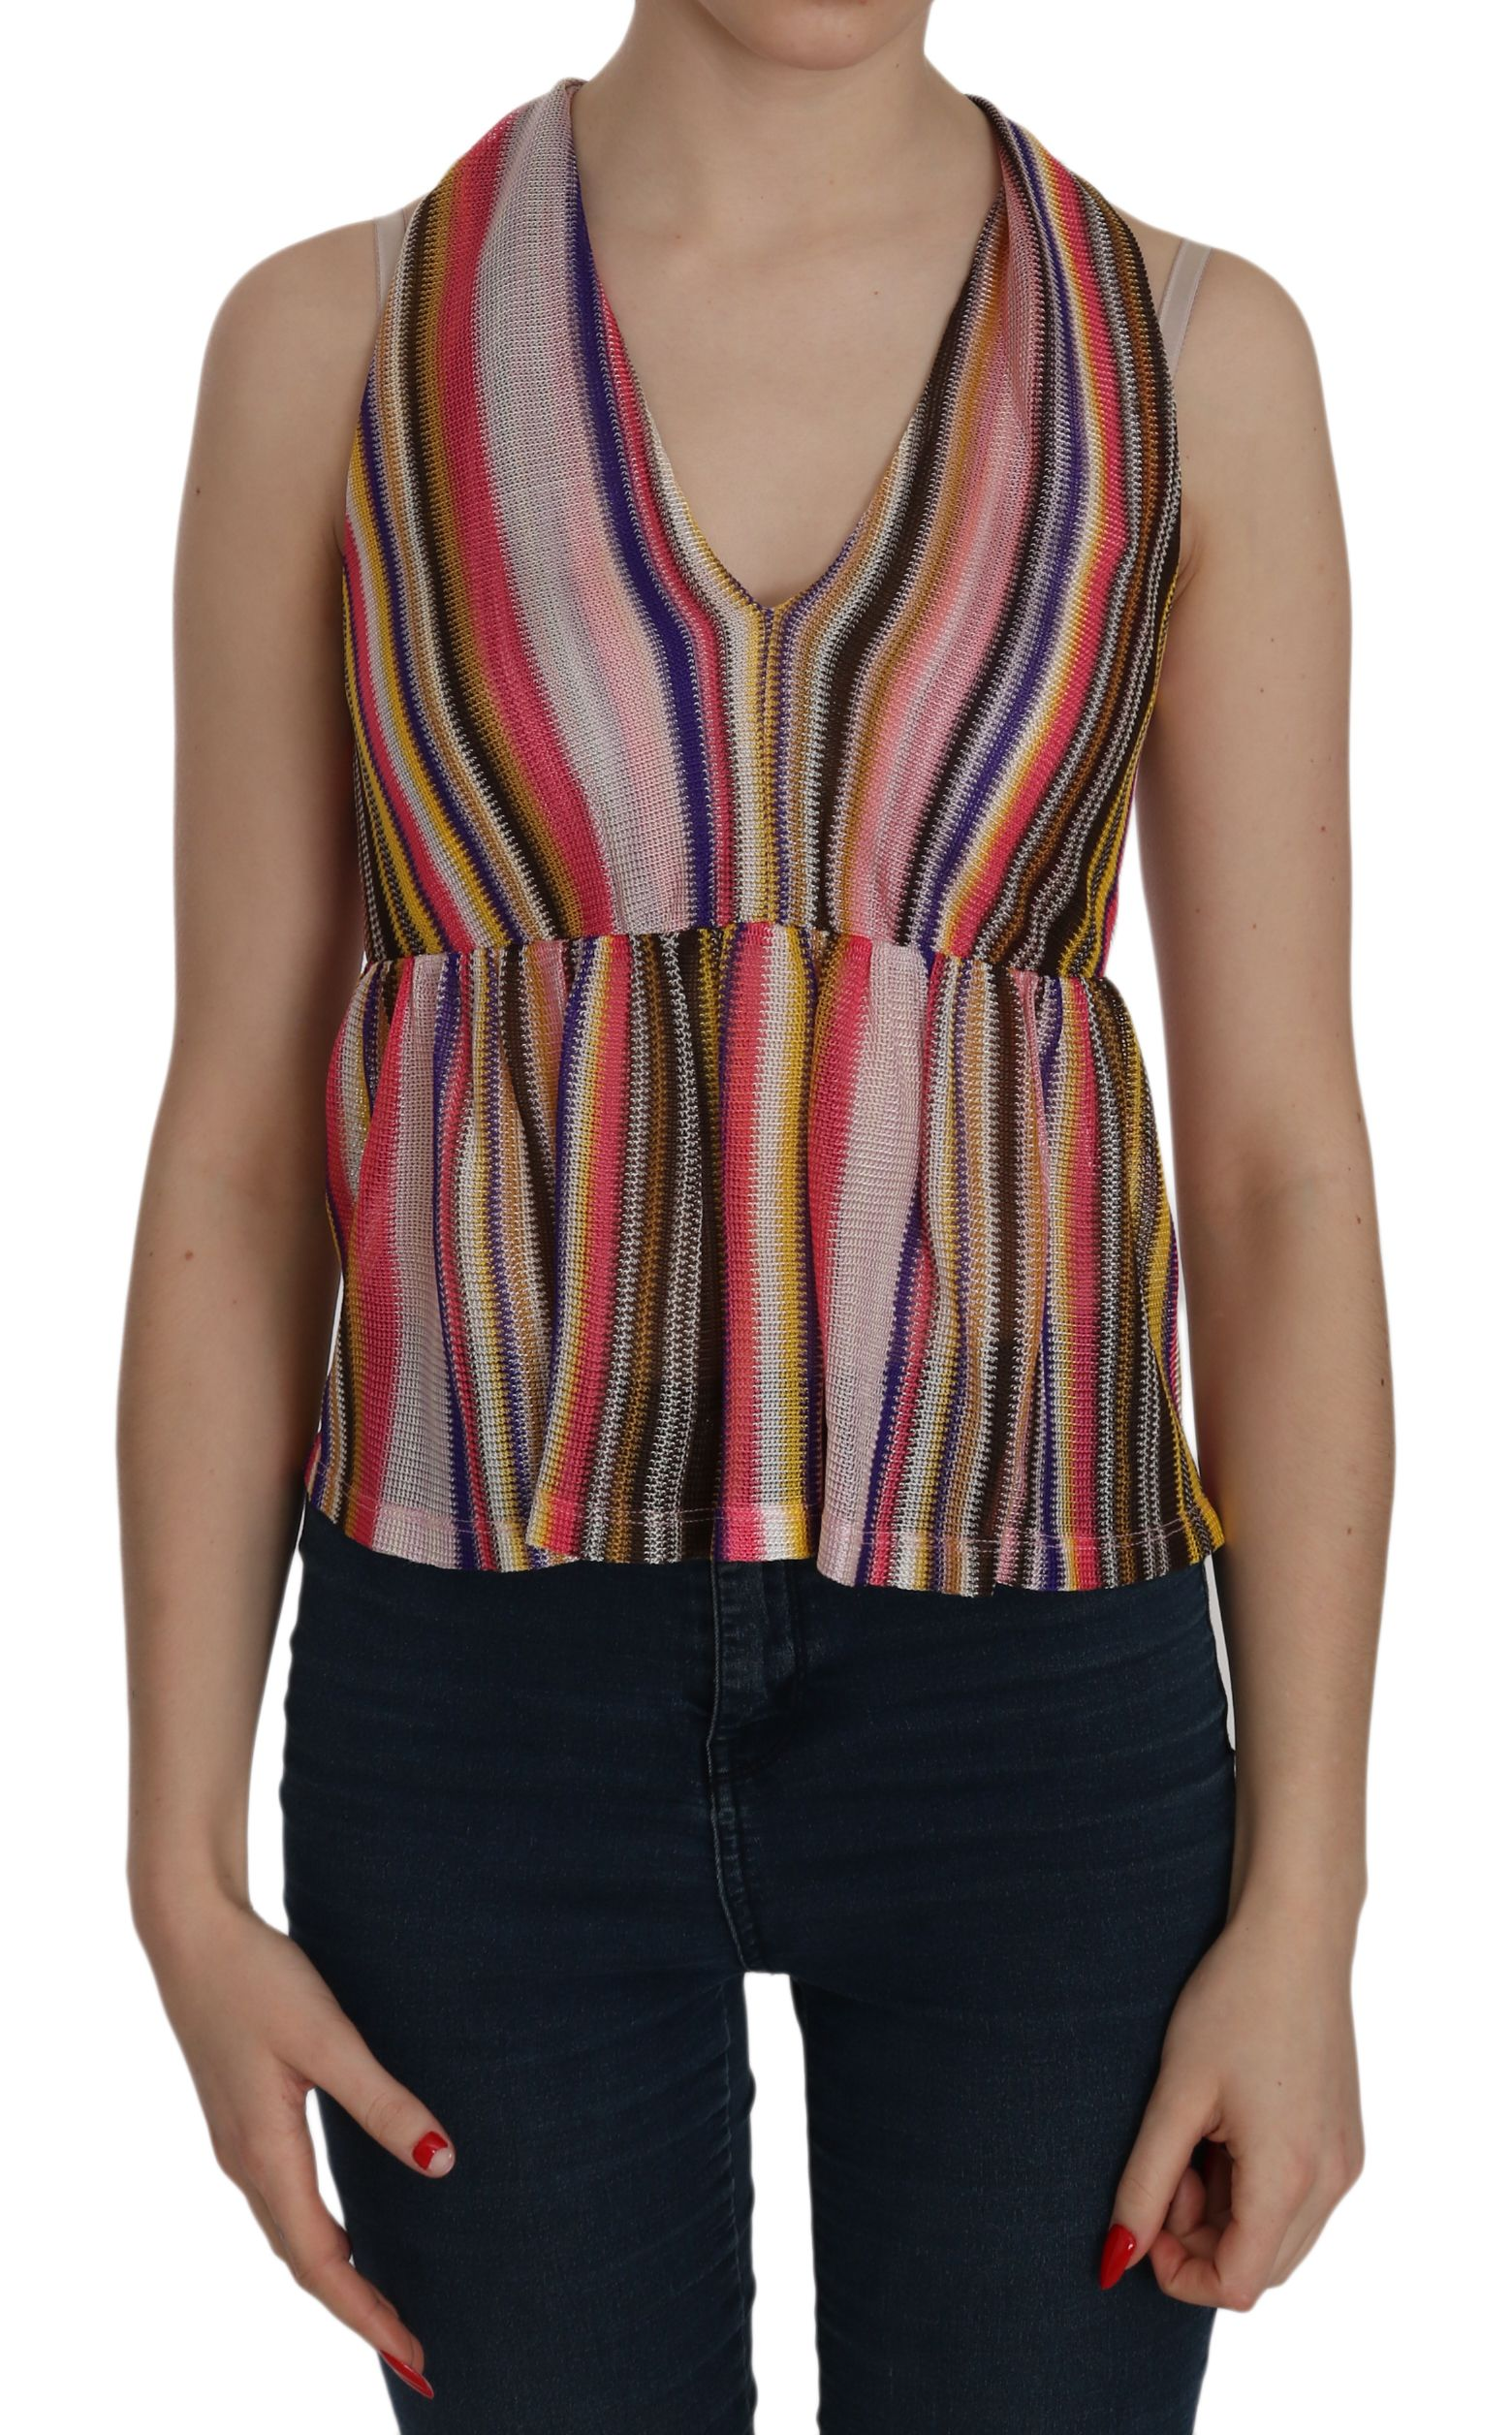 PINKO Multi Color Sleeveless Deep Neck Backless Top Blouse